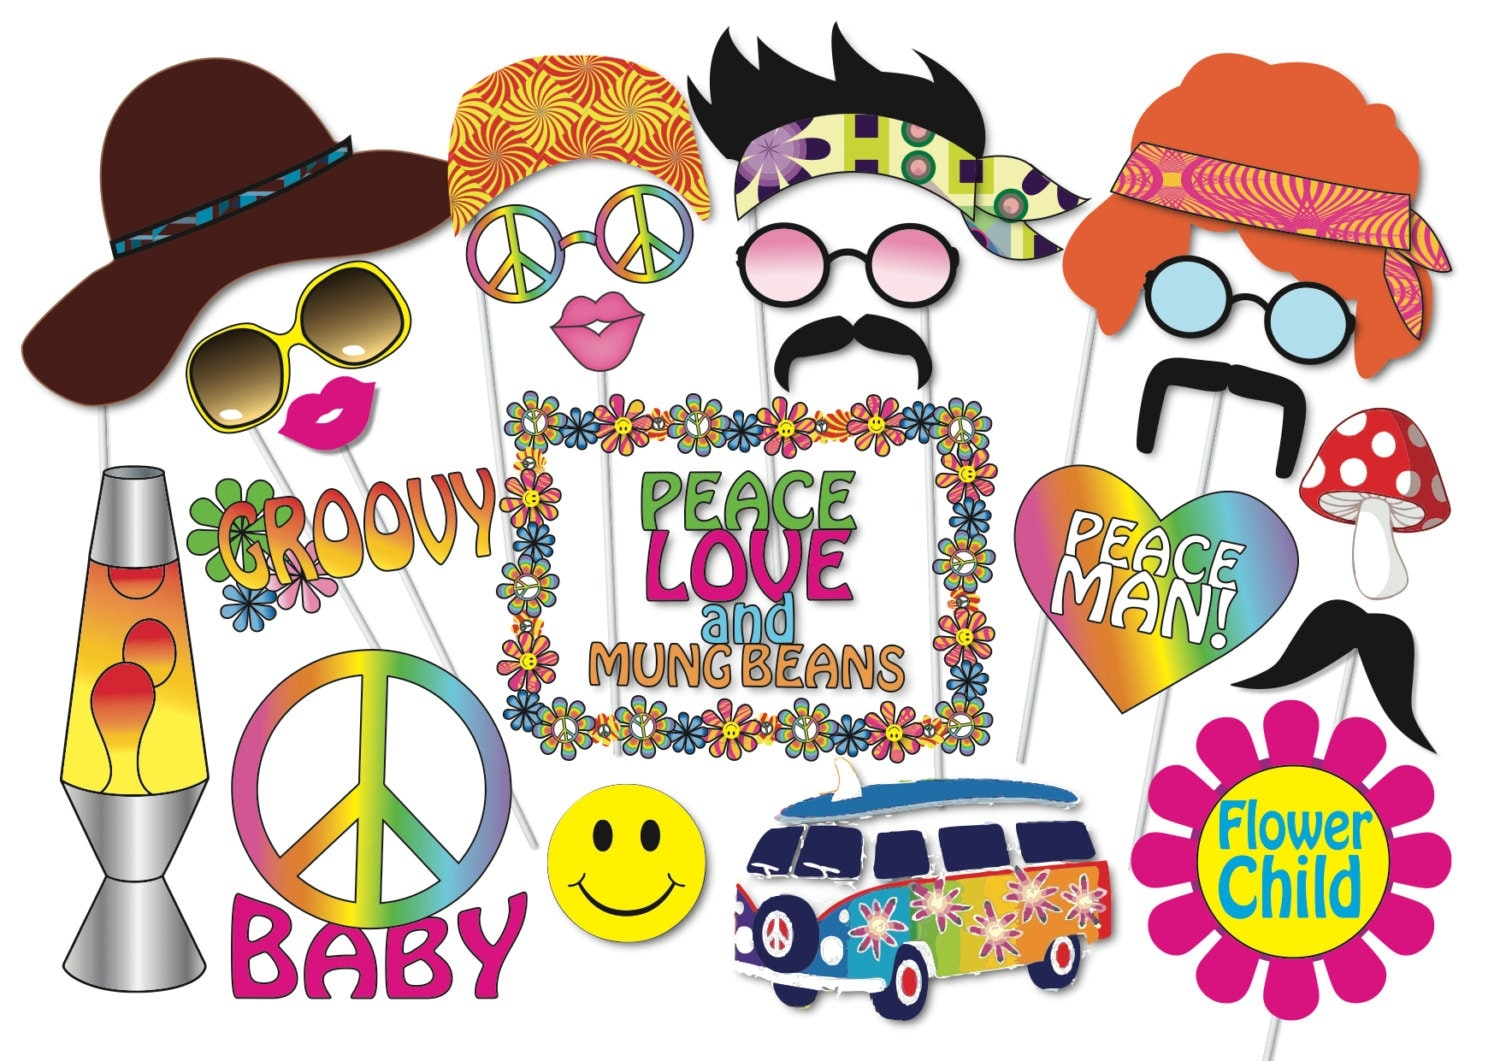 Hippie party on pinterest 60s party hippie birthday for 70s decoration ideas